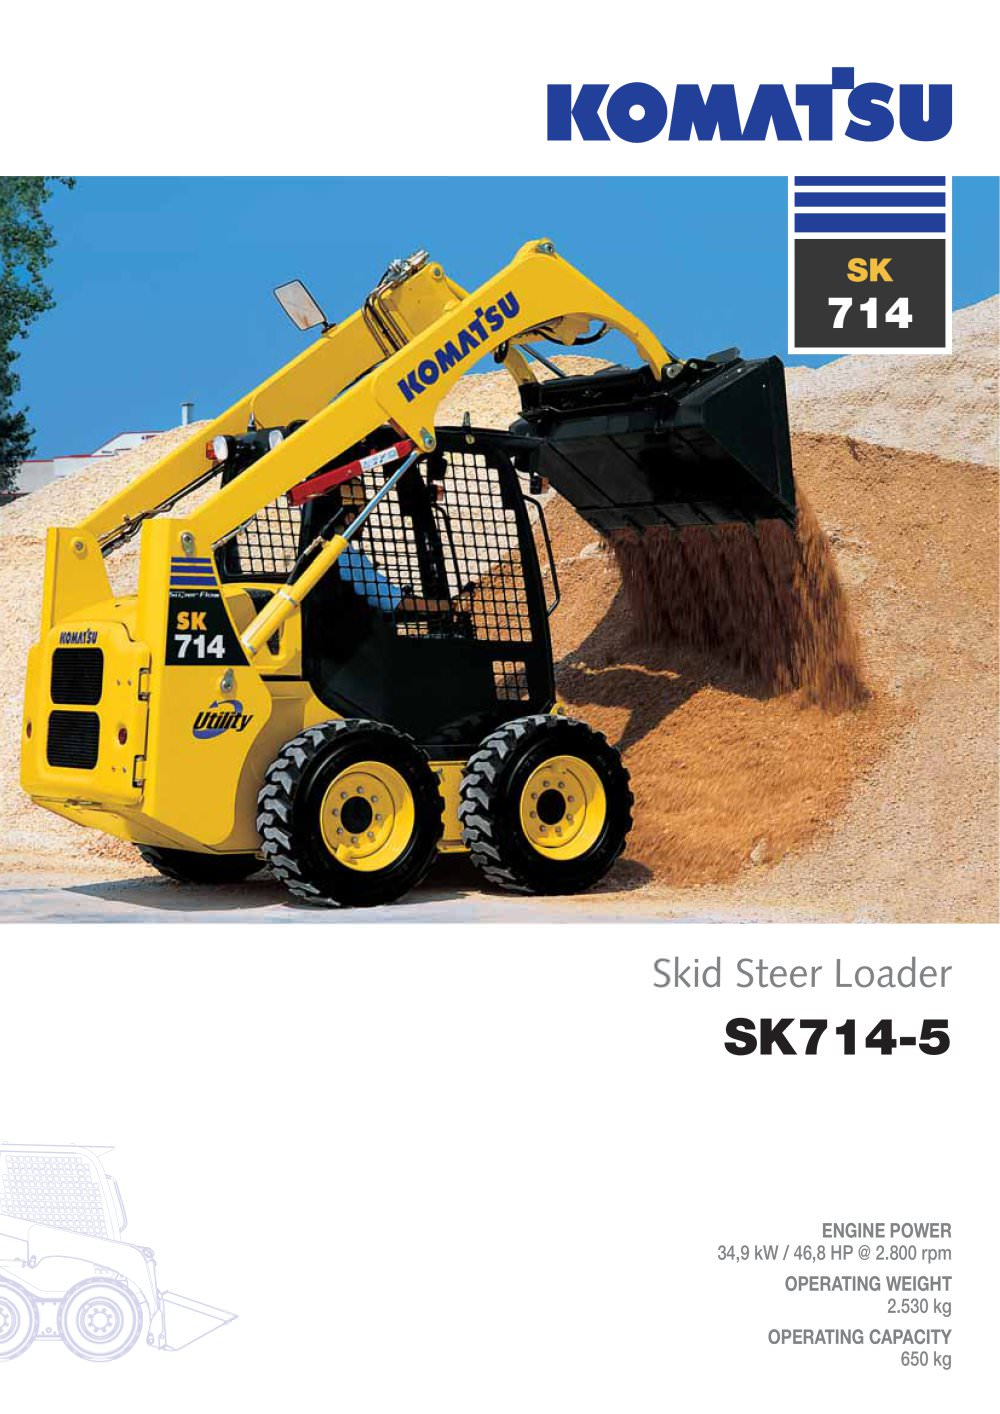 SK714-5 - 1 / 12 Pages